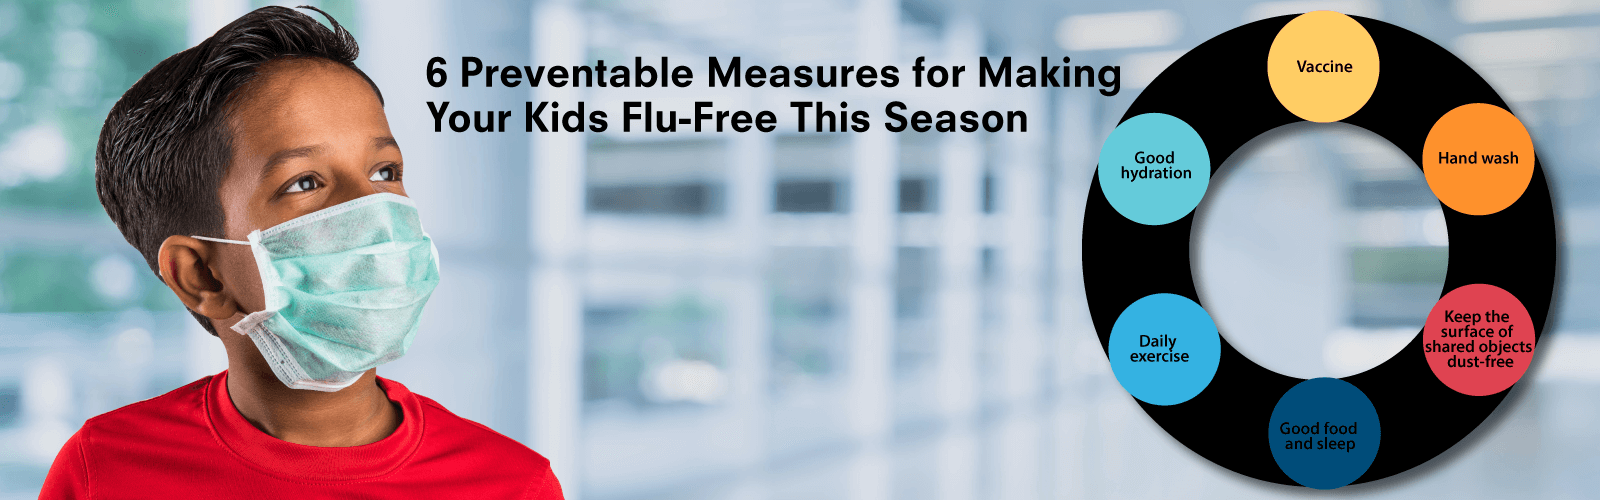 six Preventable Measures for Making Your Kids Flu-Free This Season